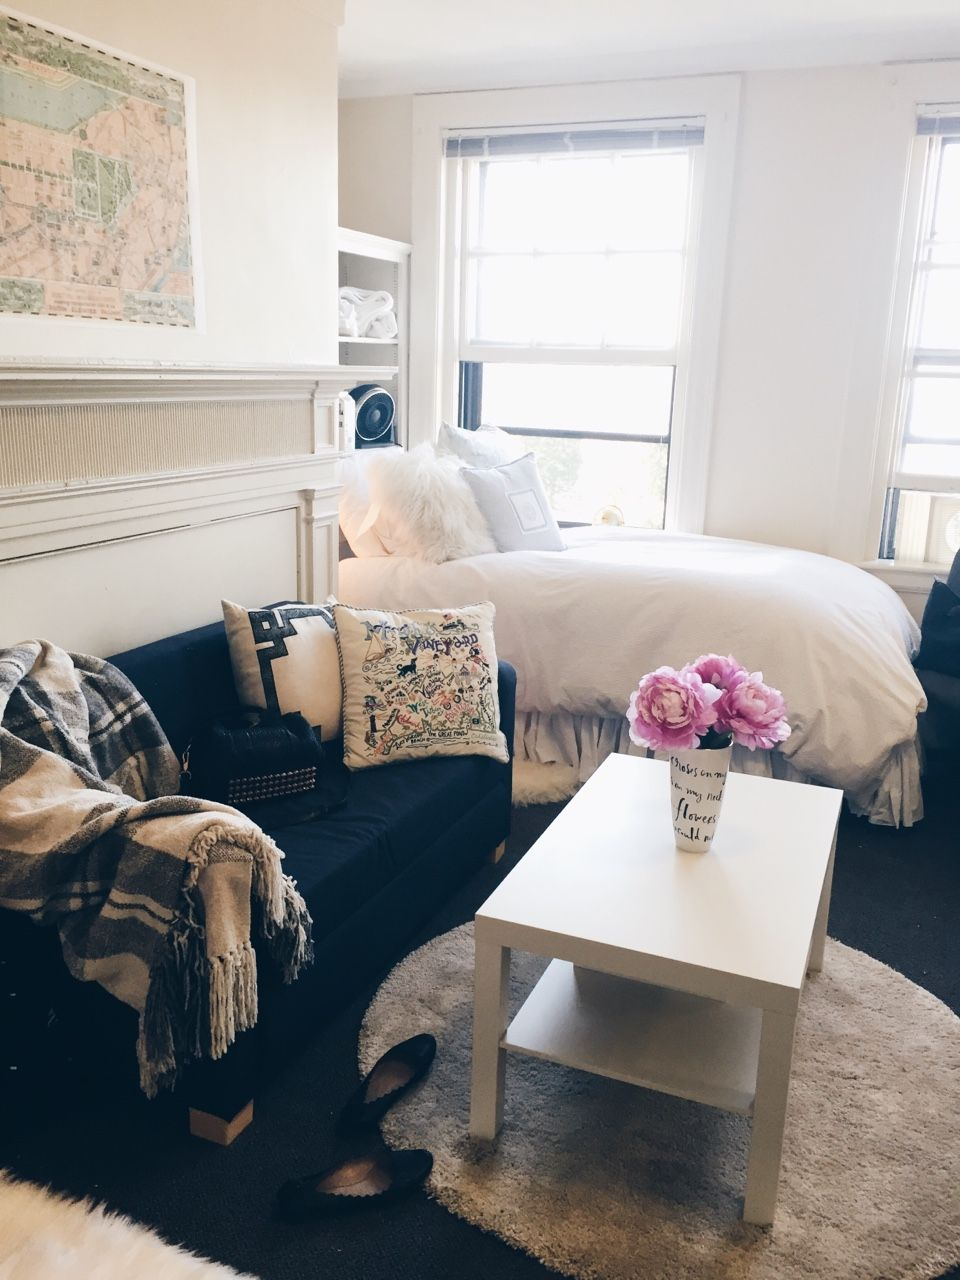 Decorating A Dorm Room Can Be A Daunting Task For Anyone